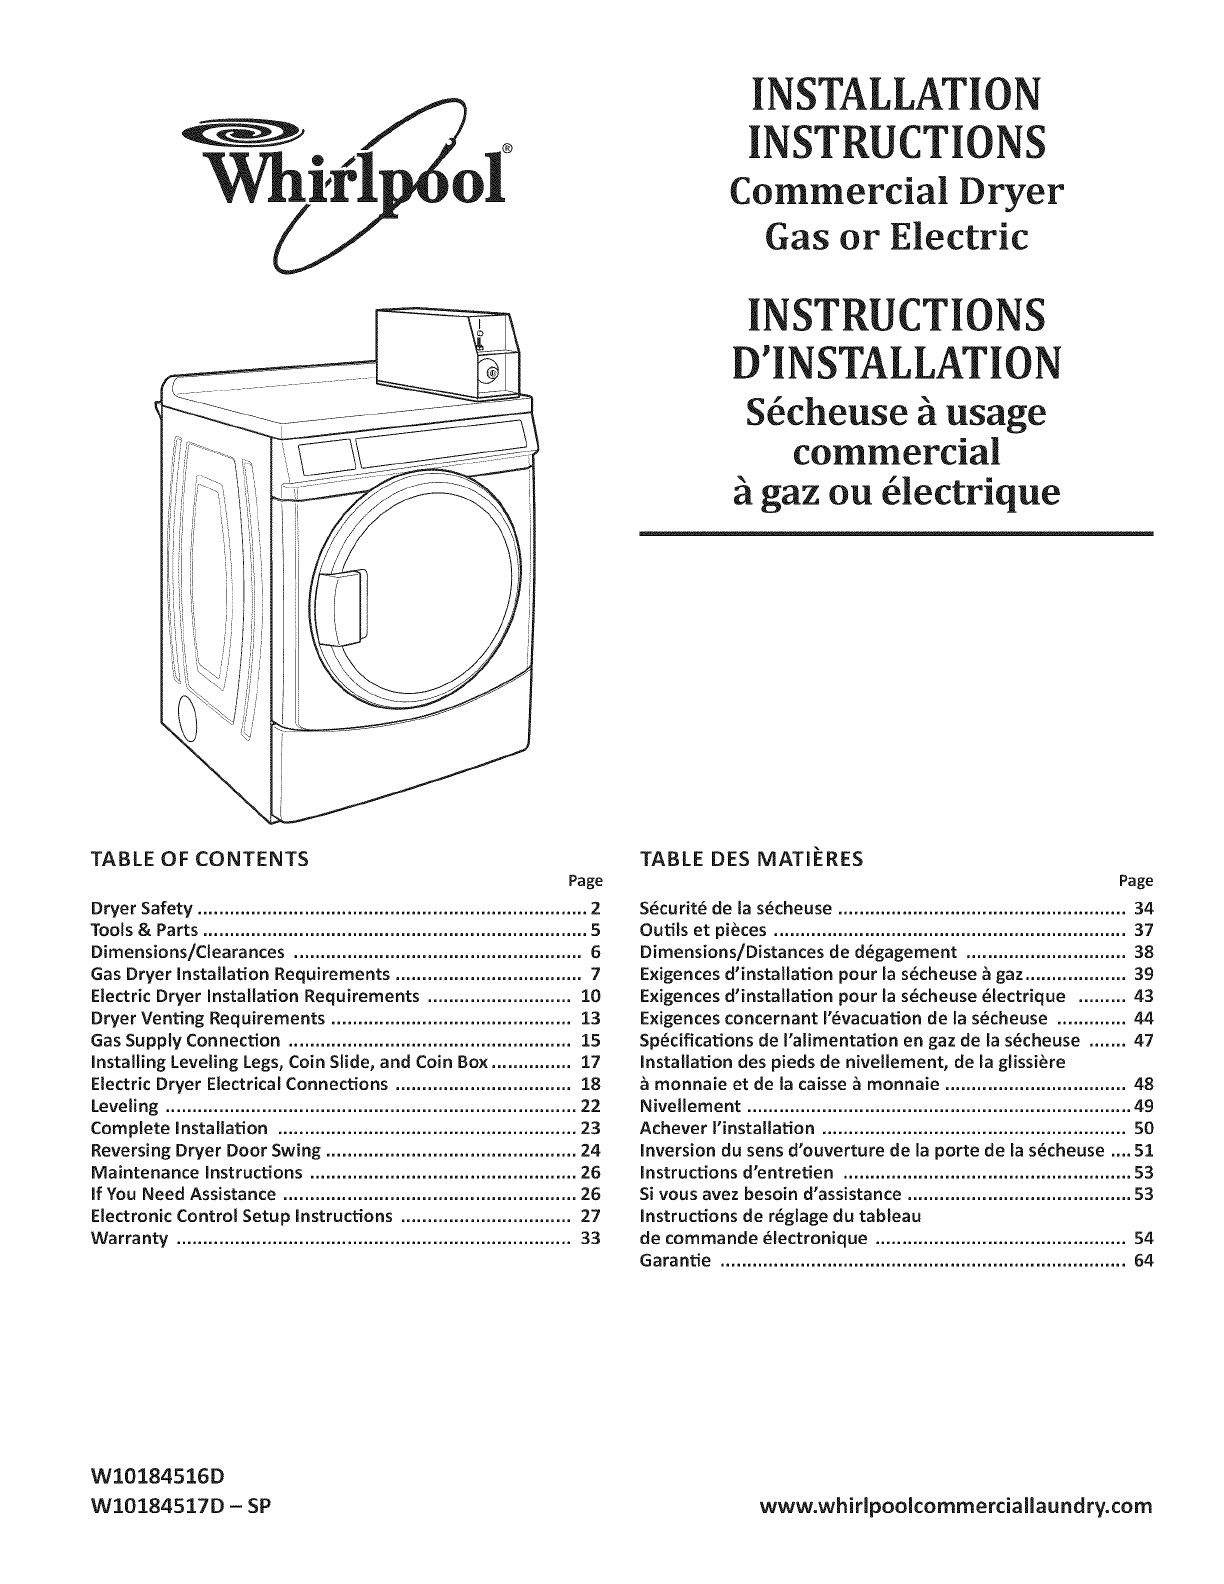 Whirlpool CED9050AW0 User Manual COMMERCIAL ELECTRIC DRYER Manuals